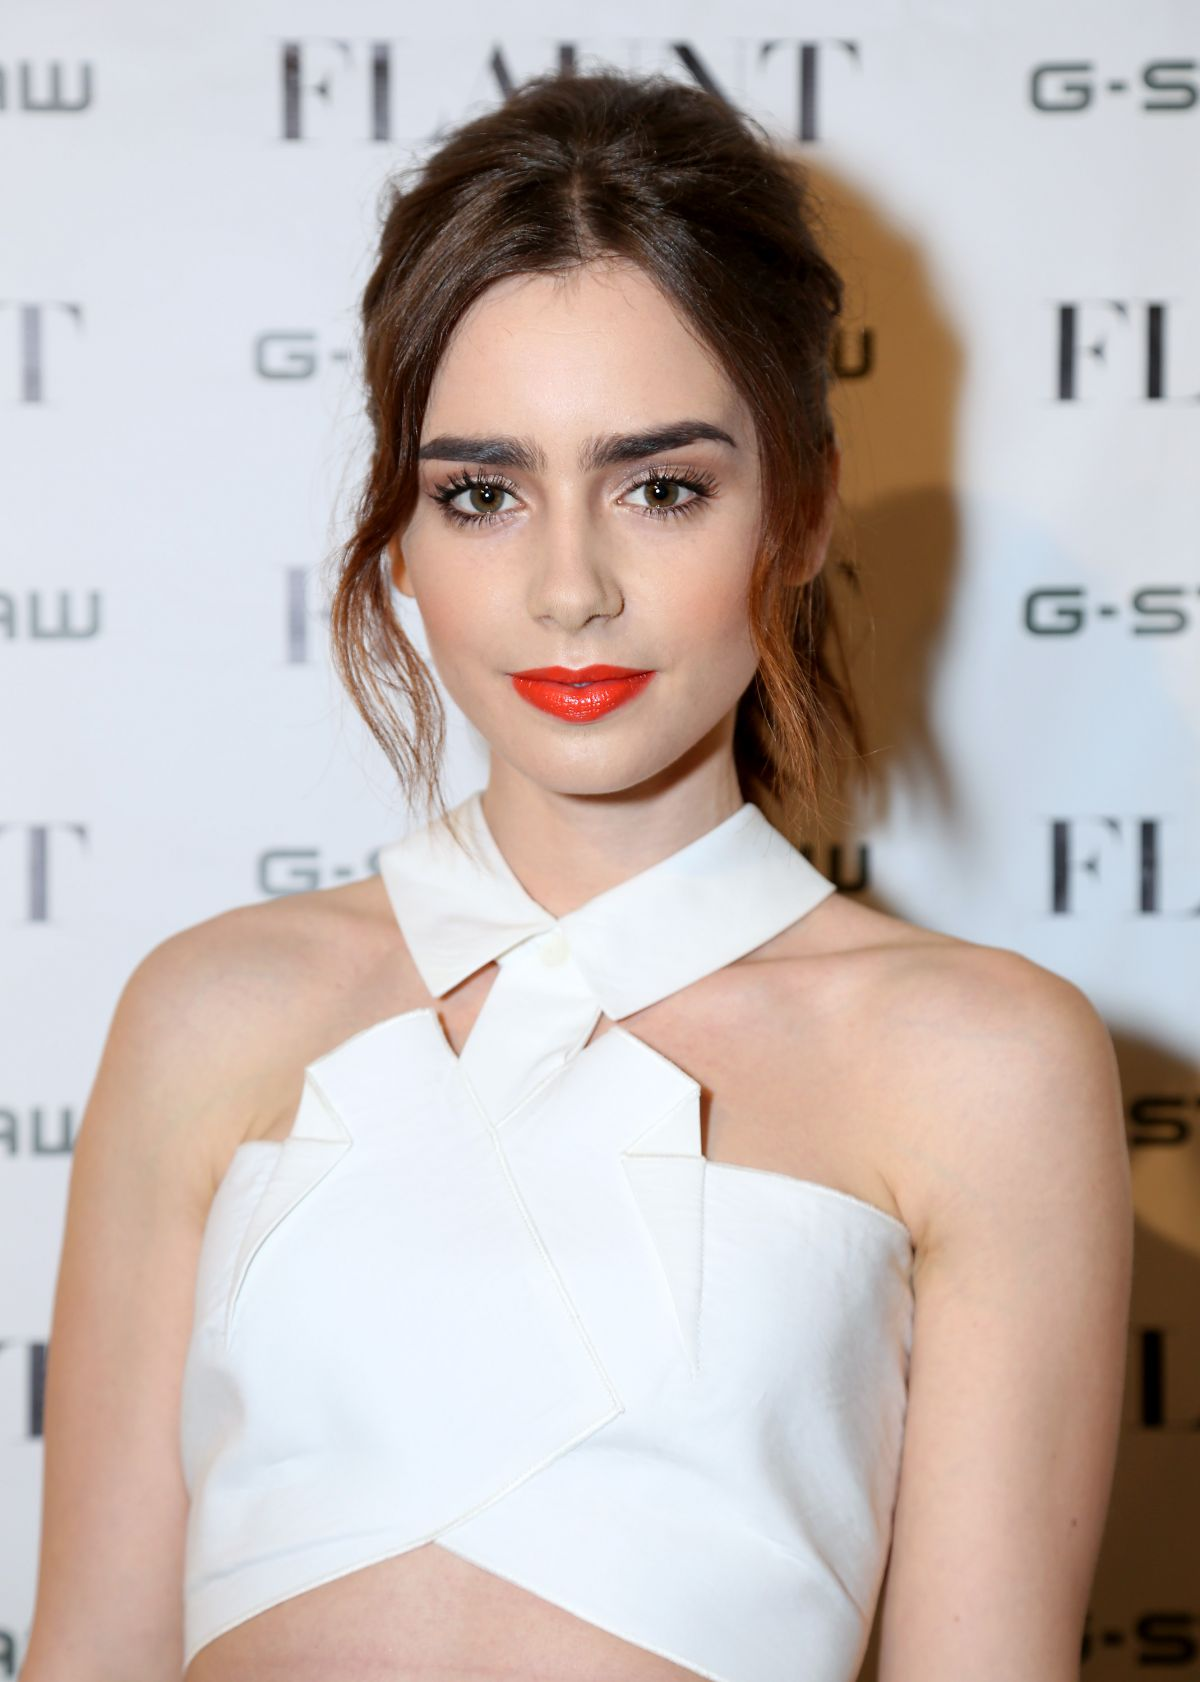 Lily Collins At The Flaunt Magazine Dye Issue Pre-Release Party In LA